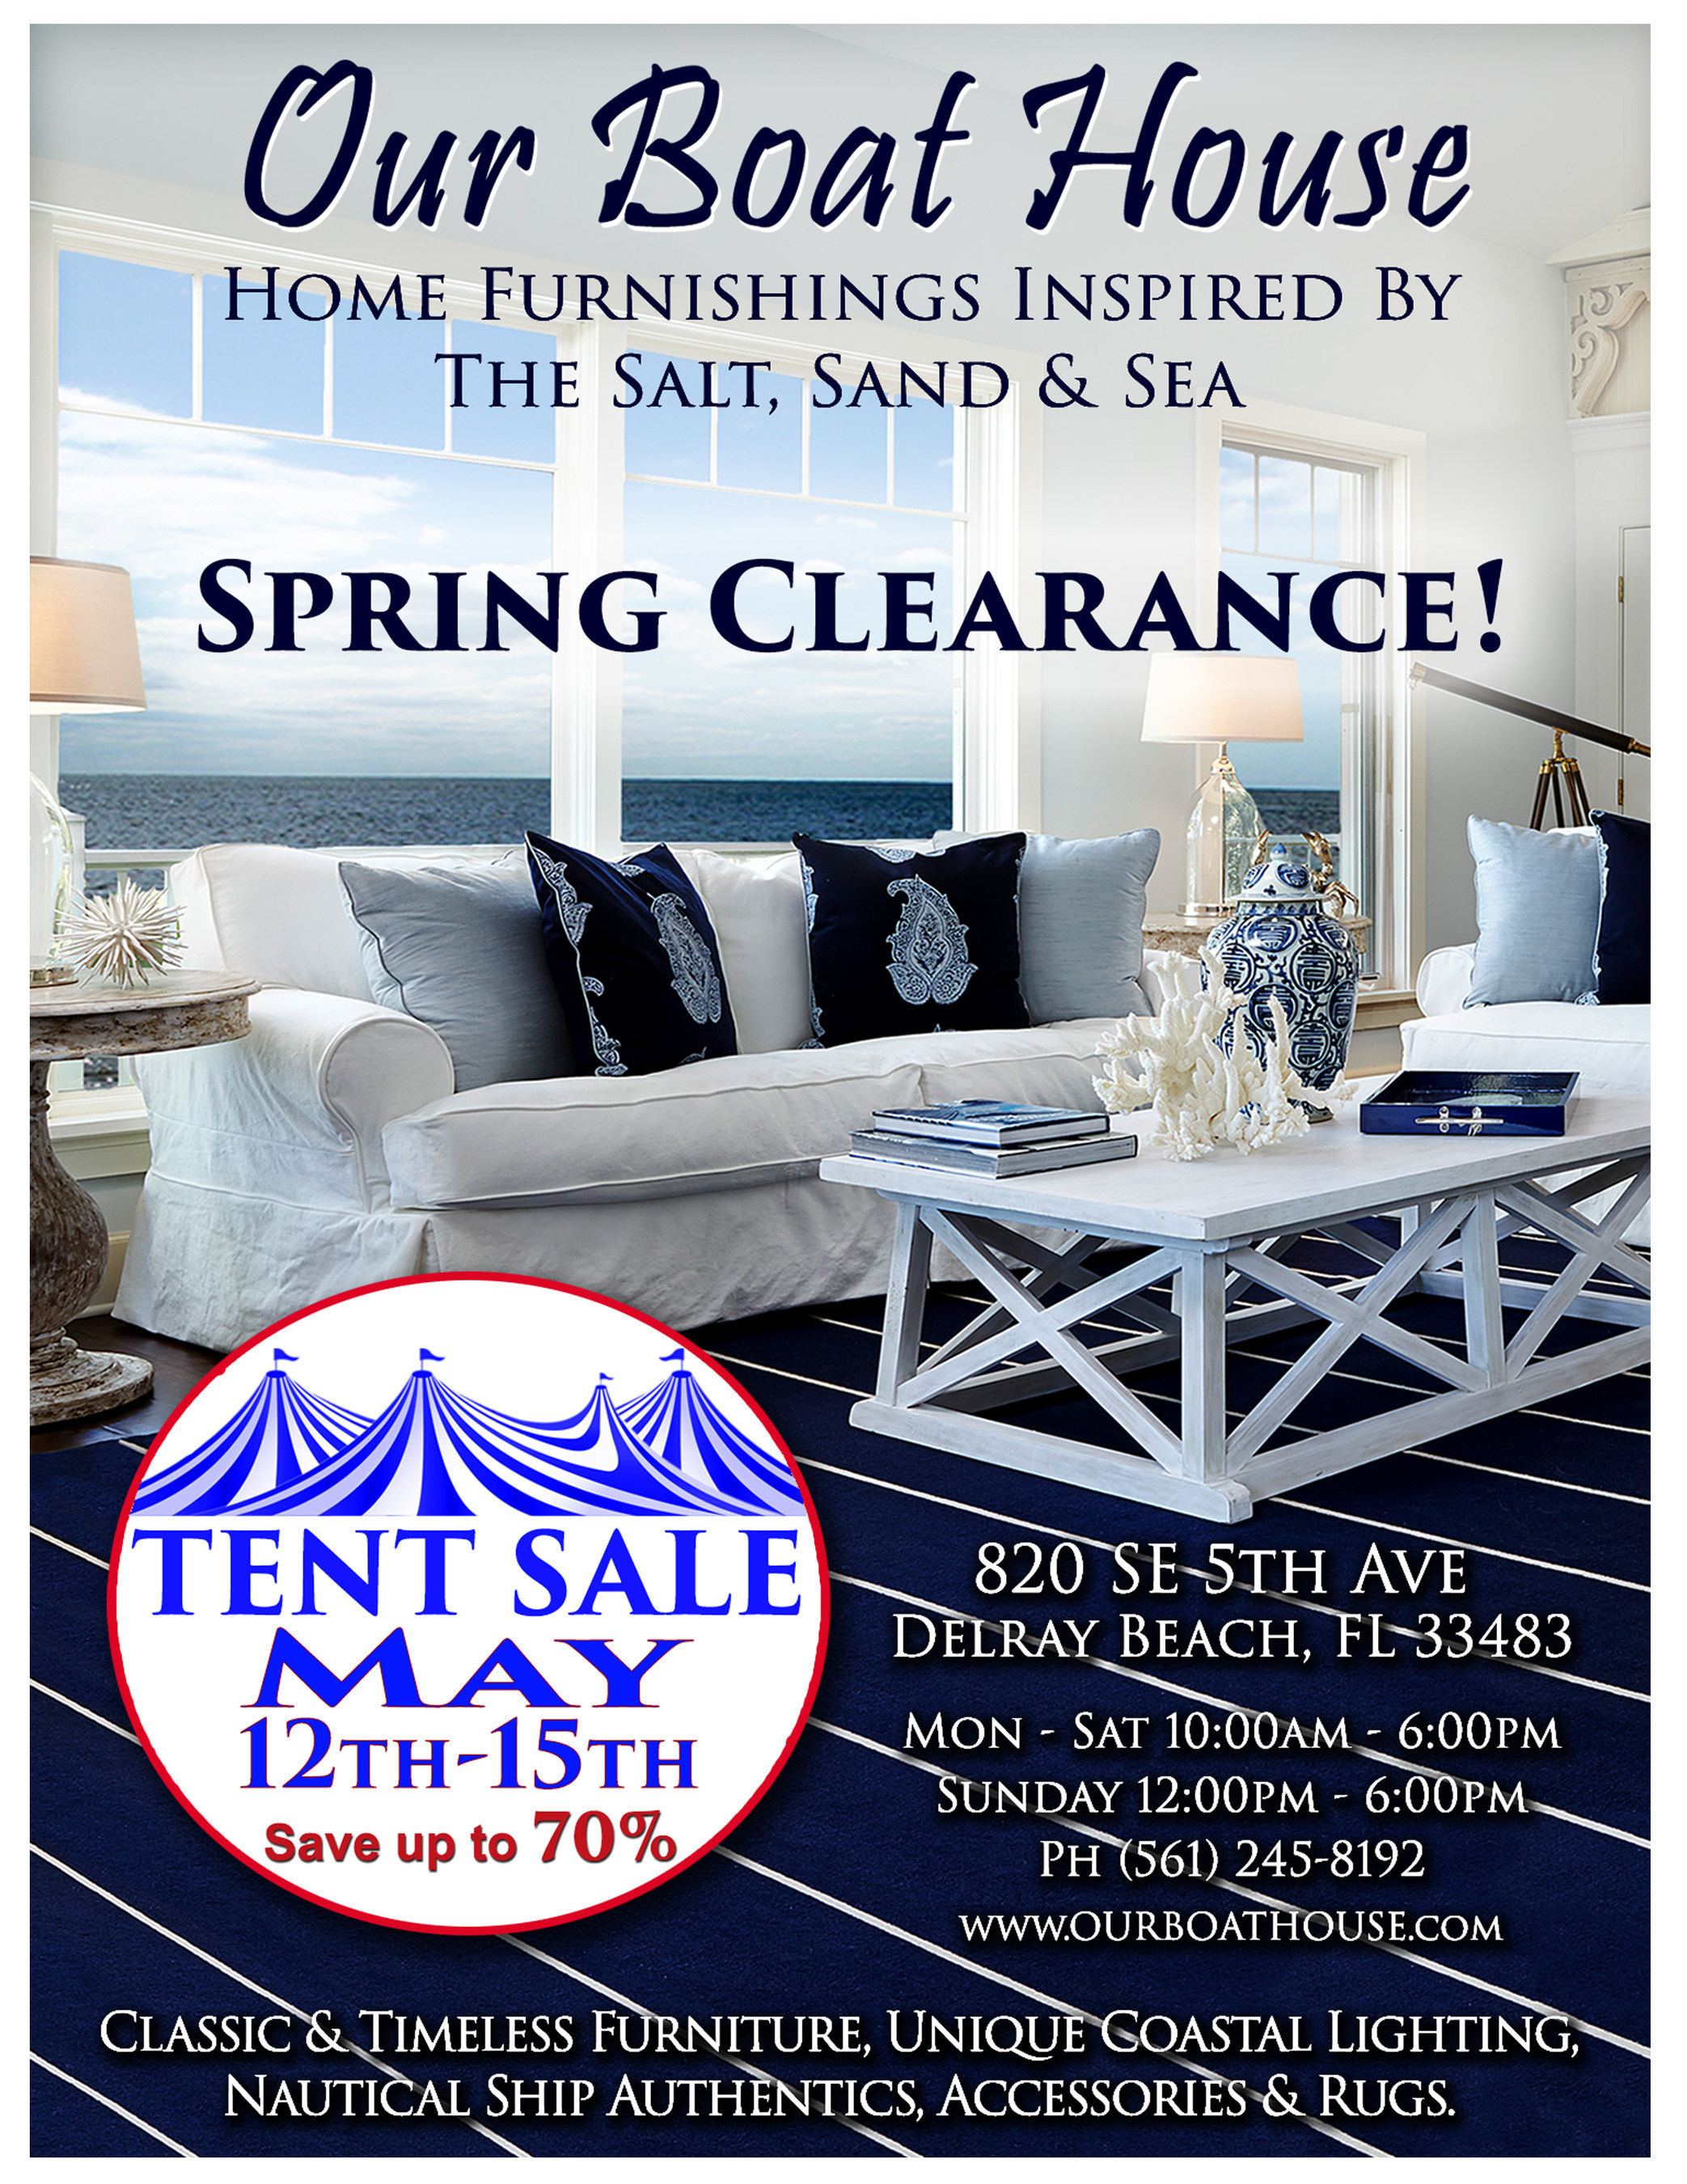 Attirant Coastal Furniture Tent Sale, Our Boat House In Delray Beach, FL Announces  The Biggest Sale Of The Year